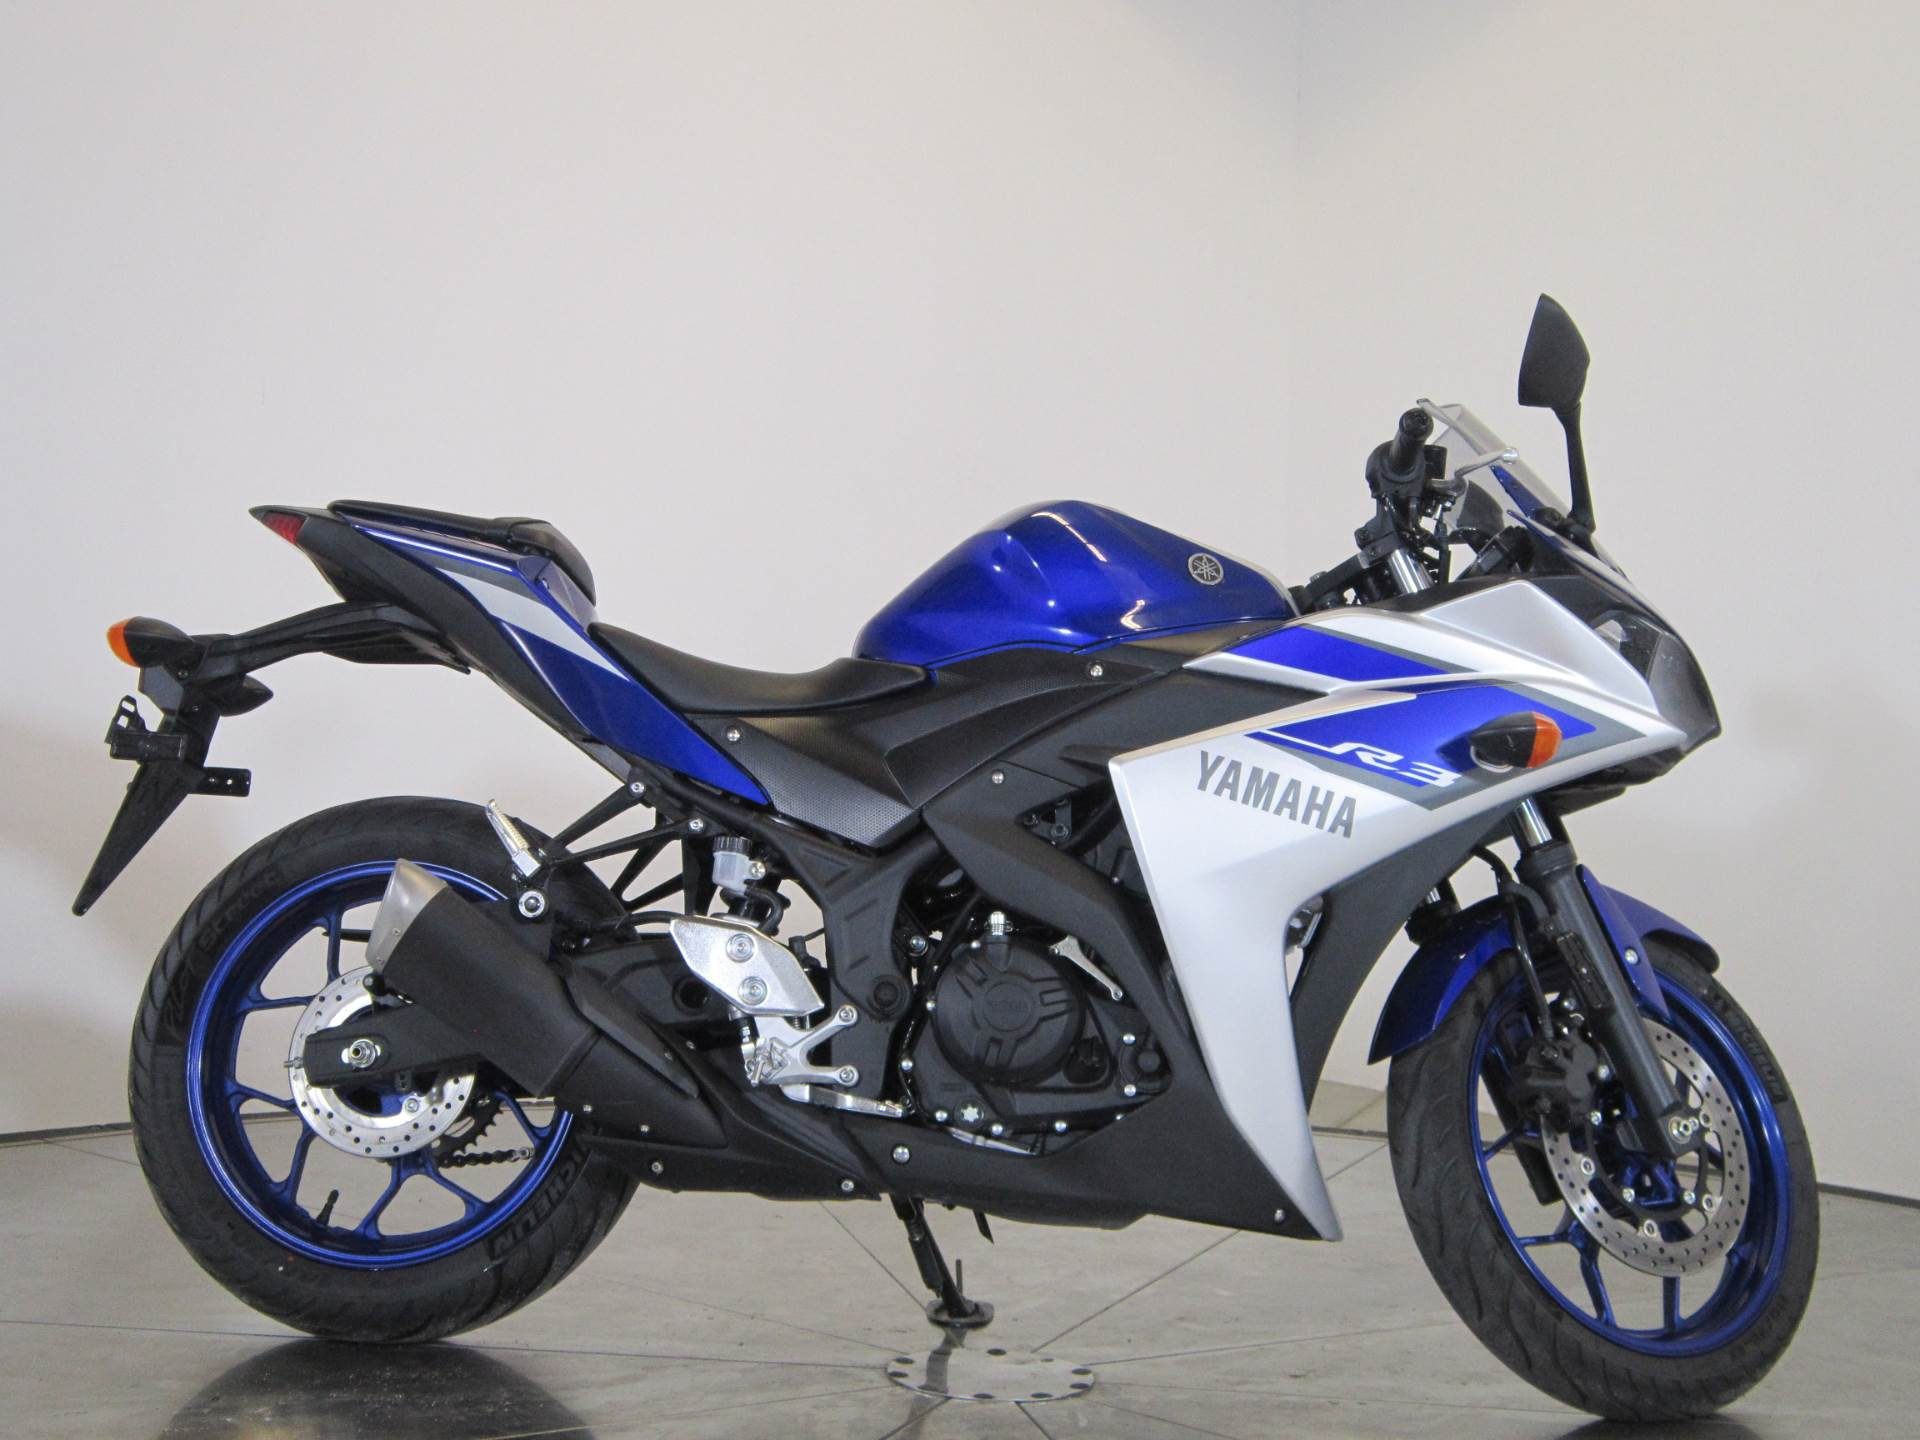 2015 Yamaha YZF-R3 for sale 13211